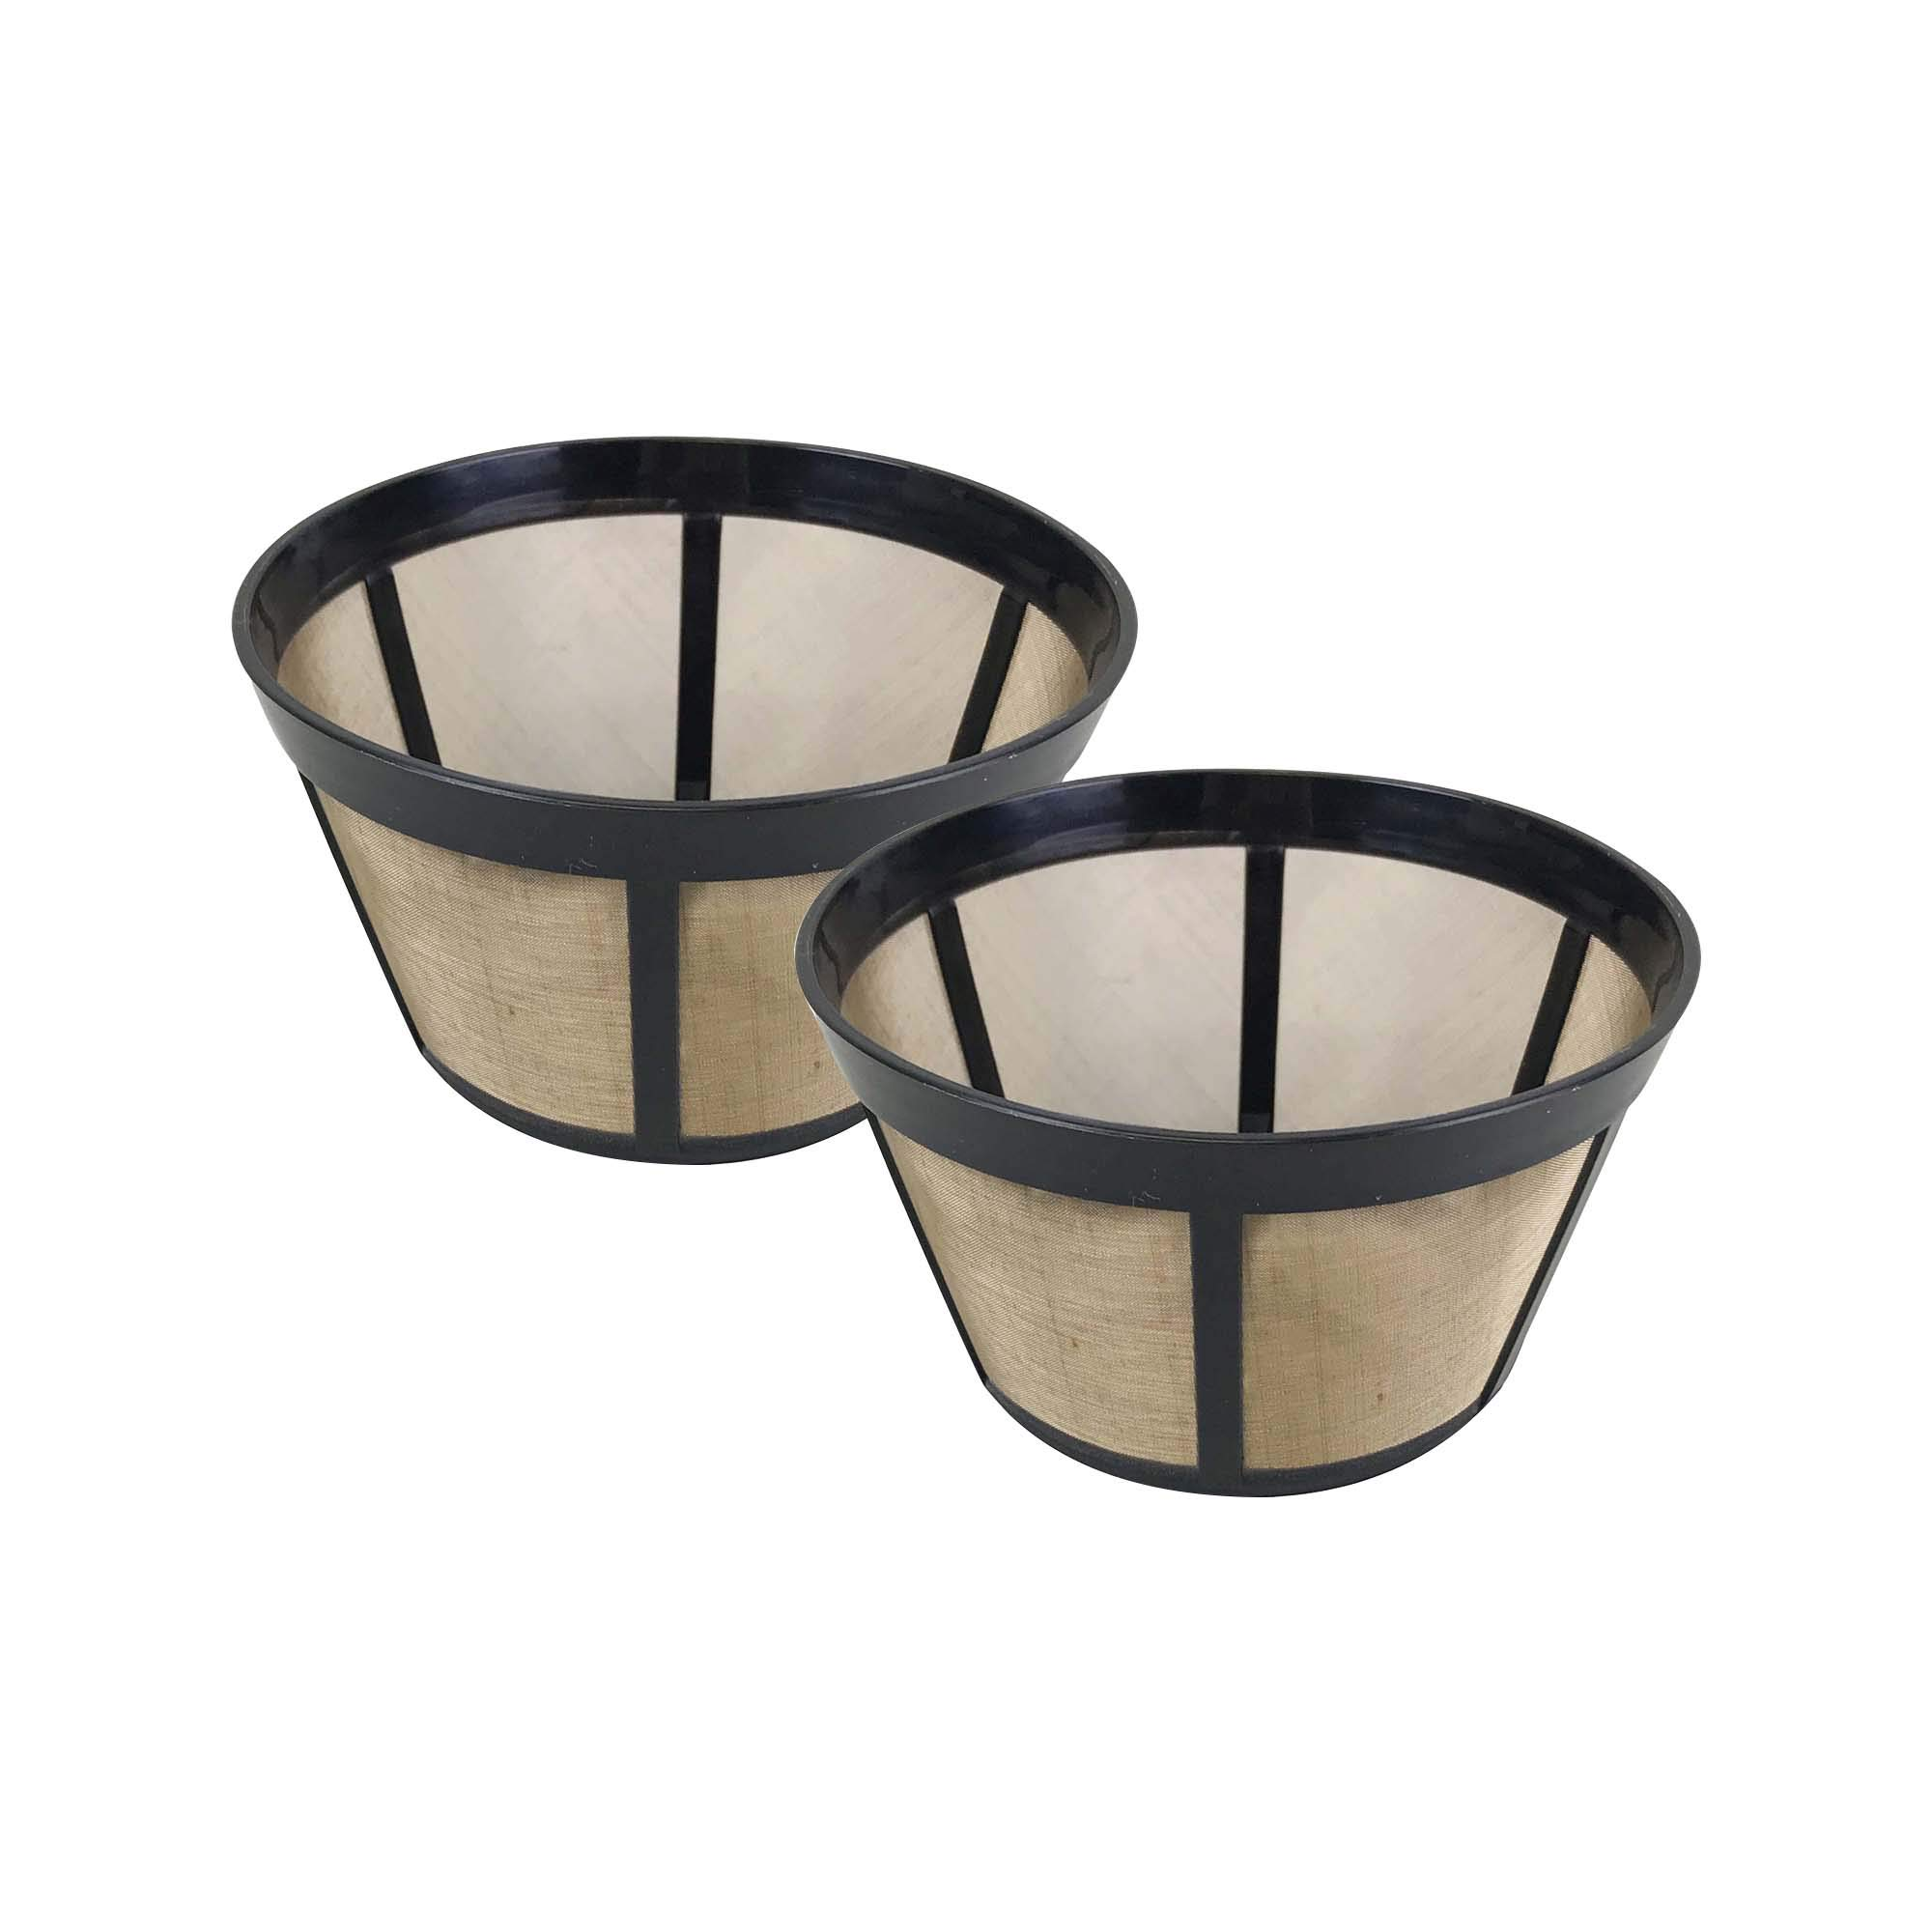 Think Crucial 2 Replacements for Bunn Basket Coffee Filter Fits BX, BTX, GRX, HG, HT NHB, NHS, ST, Washable & Reusable